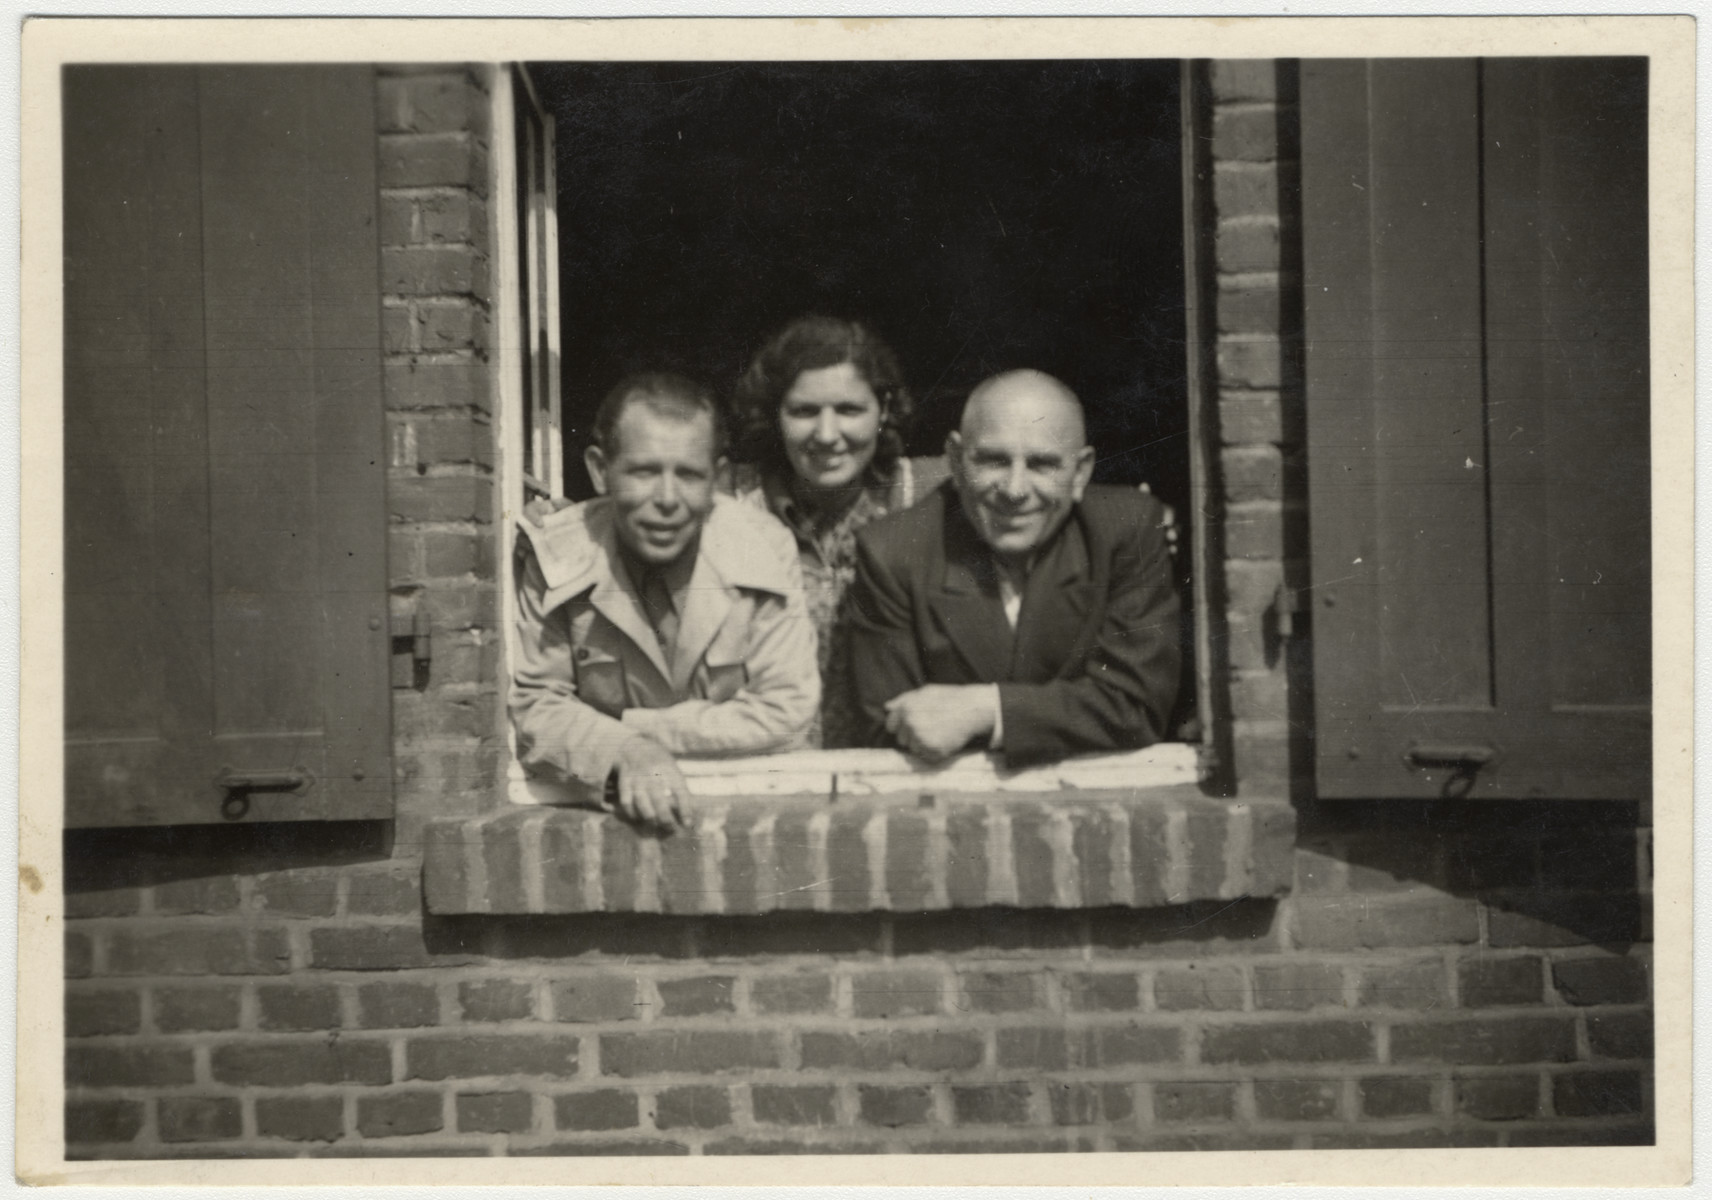 Three survivors look out of their window in the Zeilsheim displaced persons' camp.  Pictured are Laibkeh Minuskin, Sonia Minuskin and Moise Mendel.